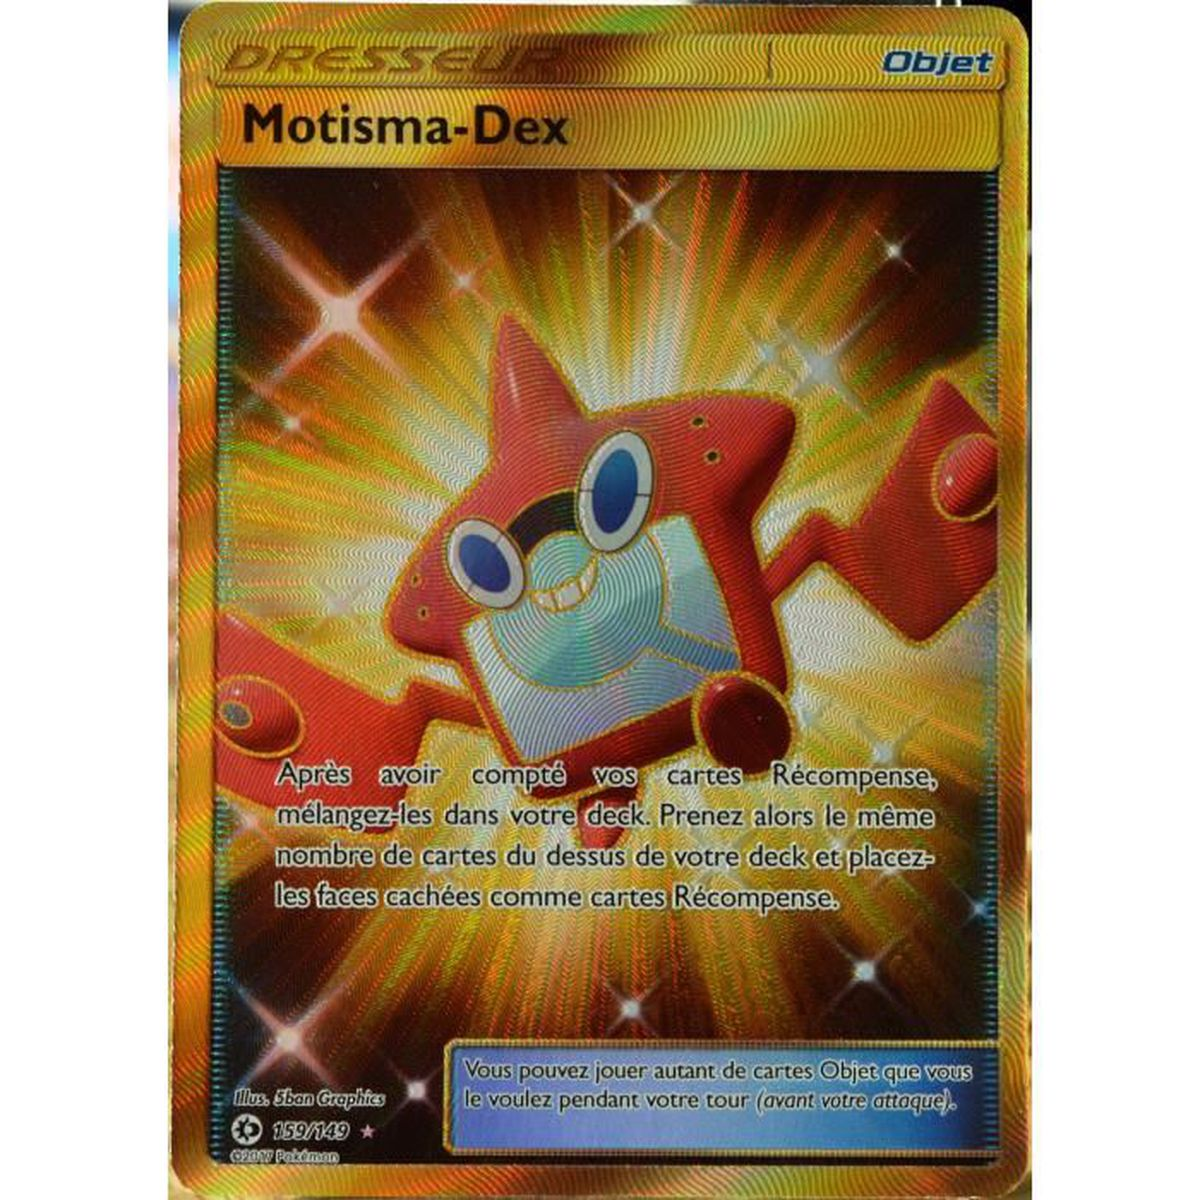 Carte pok mon 159 149 motisma dex full art secrete sm1 - Motisma pokemon x ...